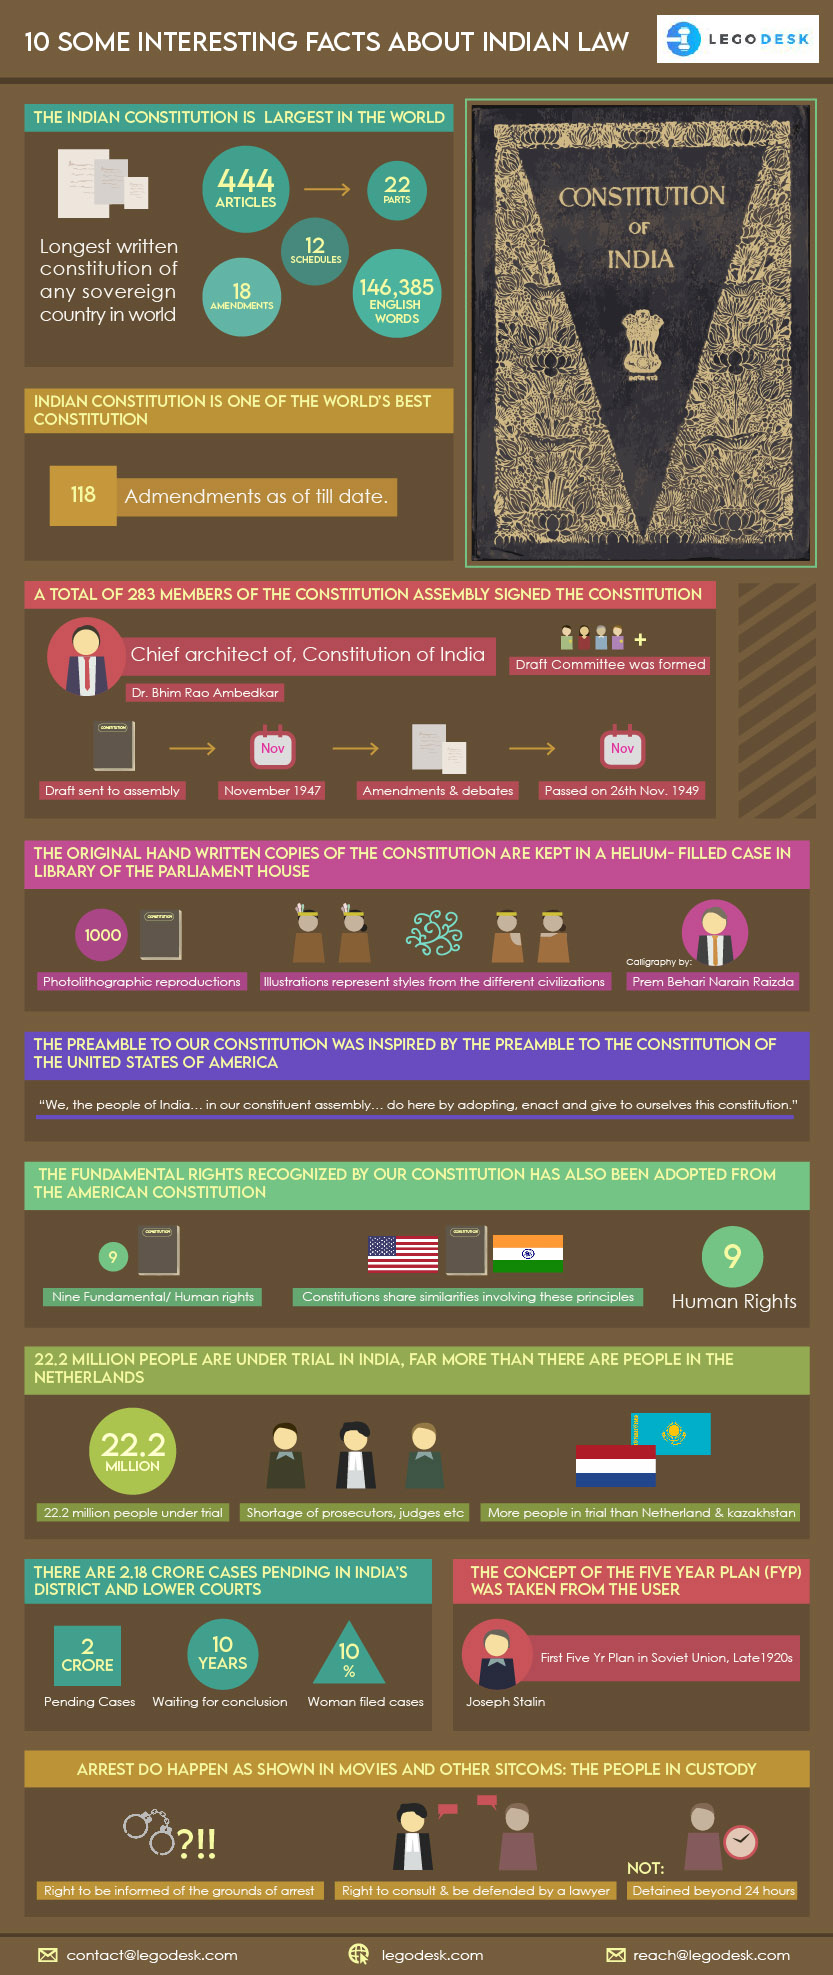 Facts about Indian Law